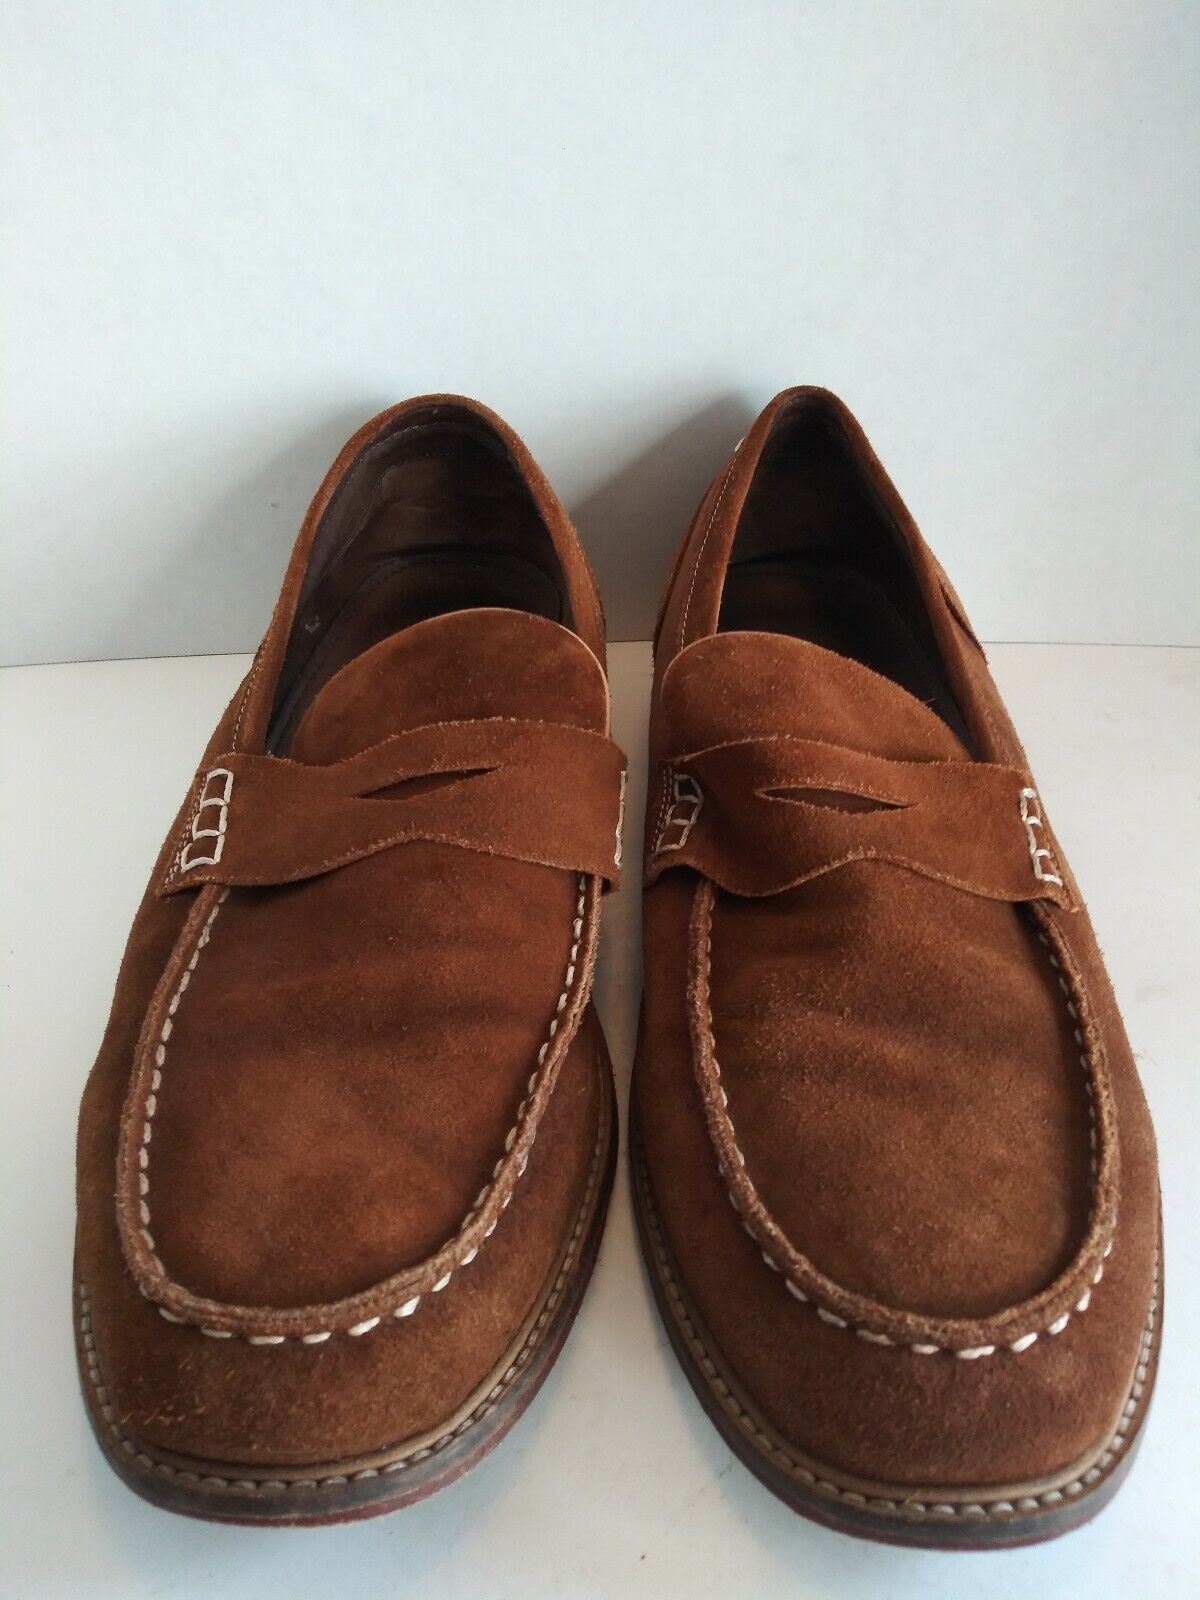 Testosterone Village Six Brown Suede Penny Loafers Moc Toe Mens Size US 13